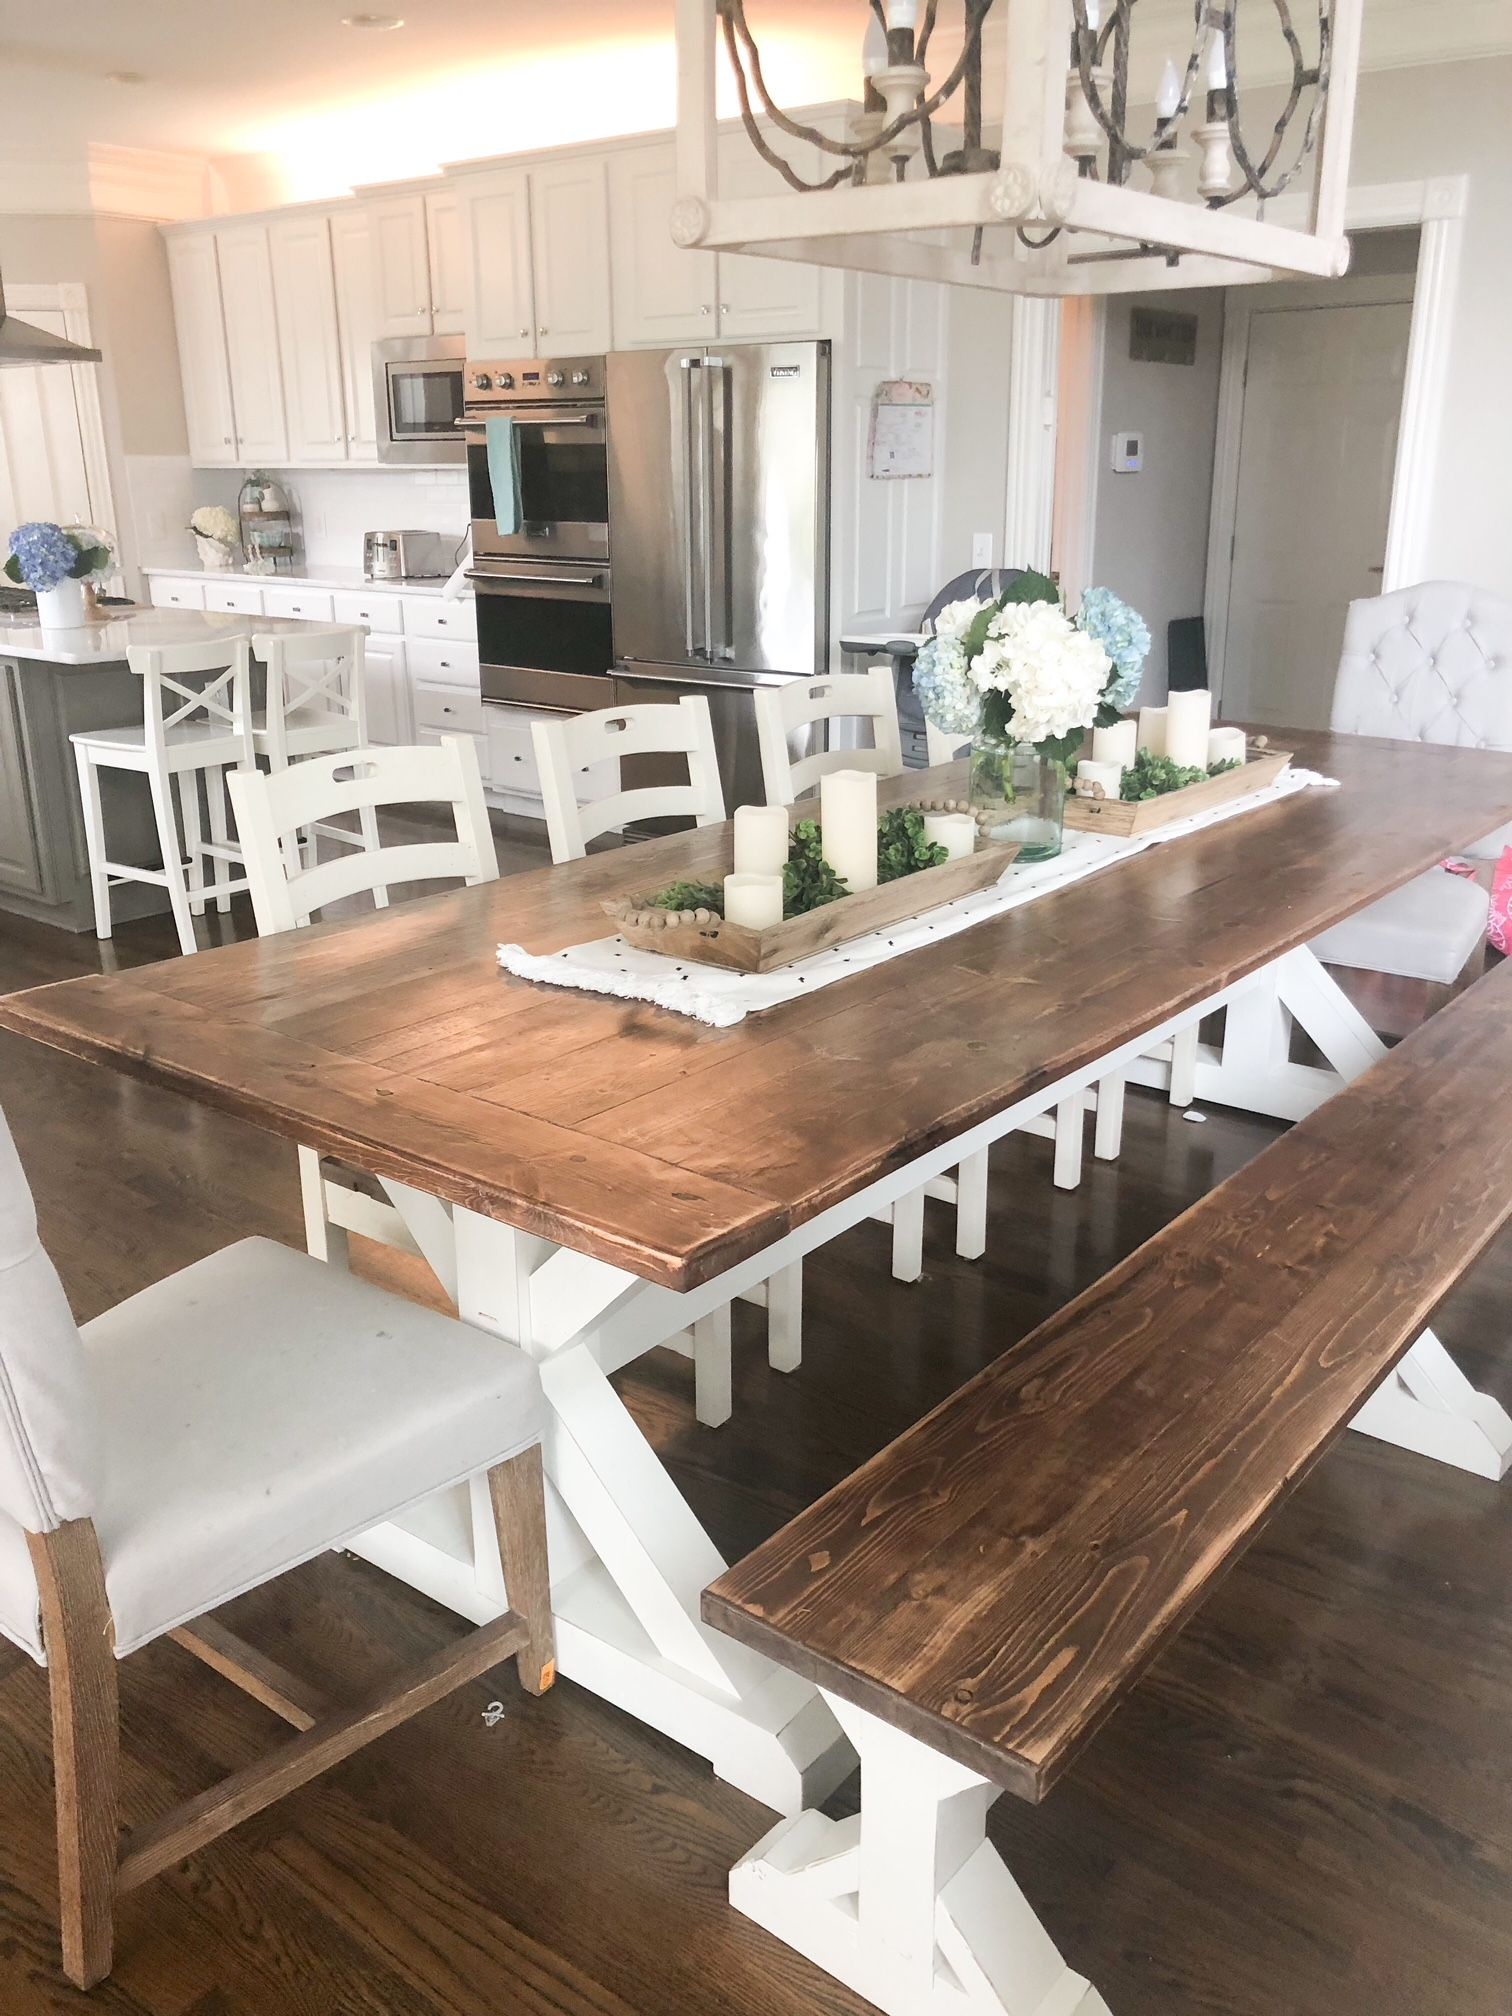 Property Brothers Dream Home The Dining Area With Custom Farmhouse